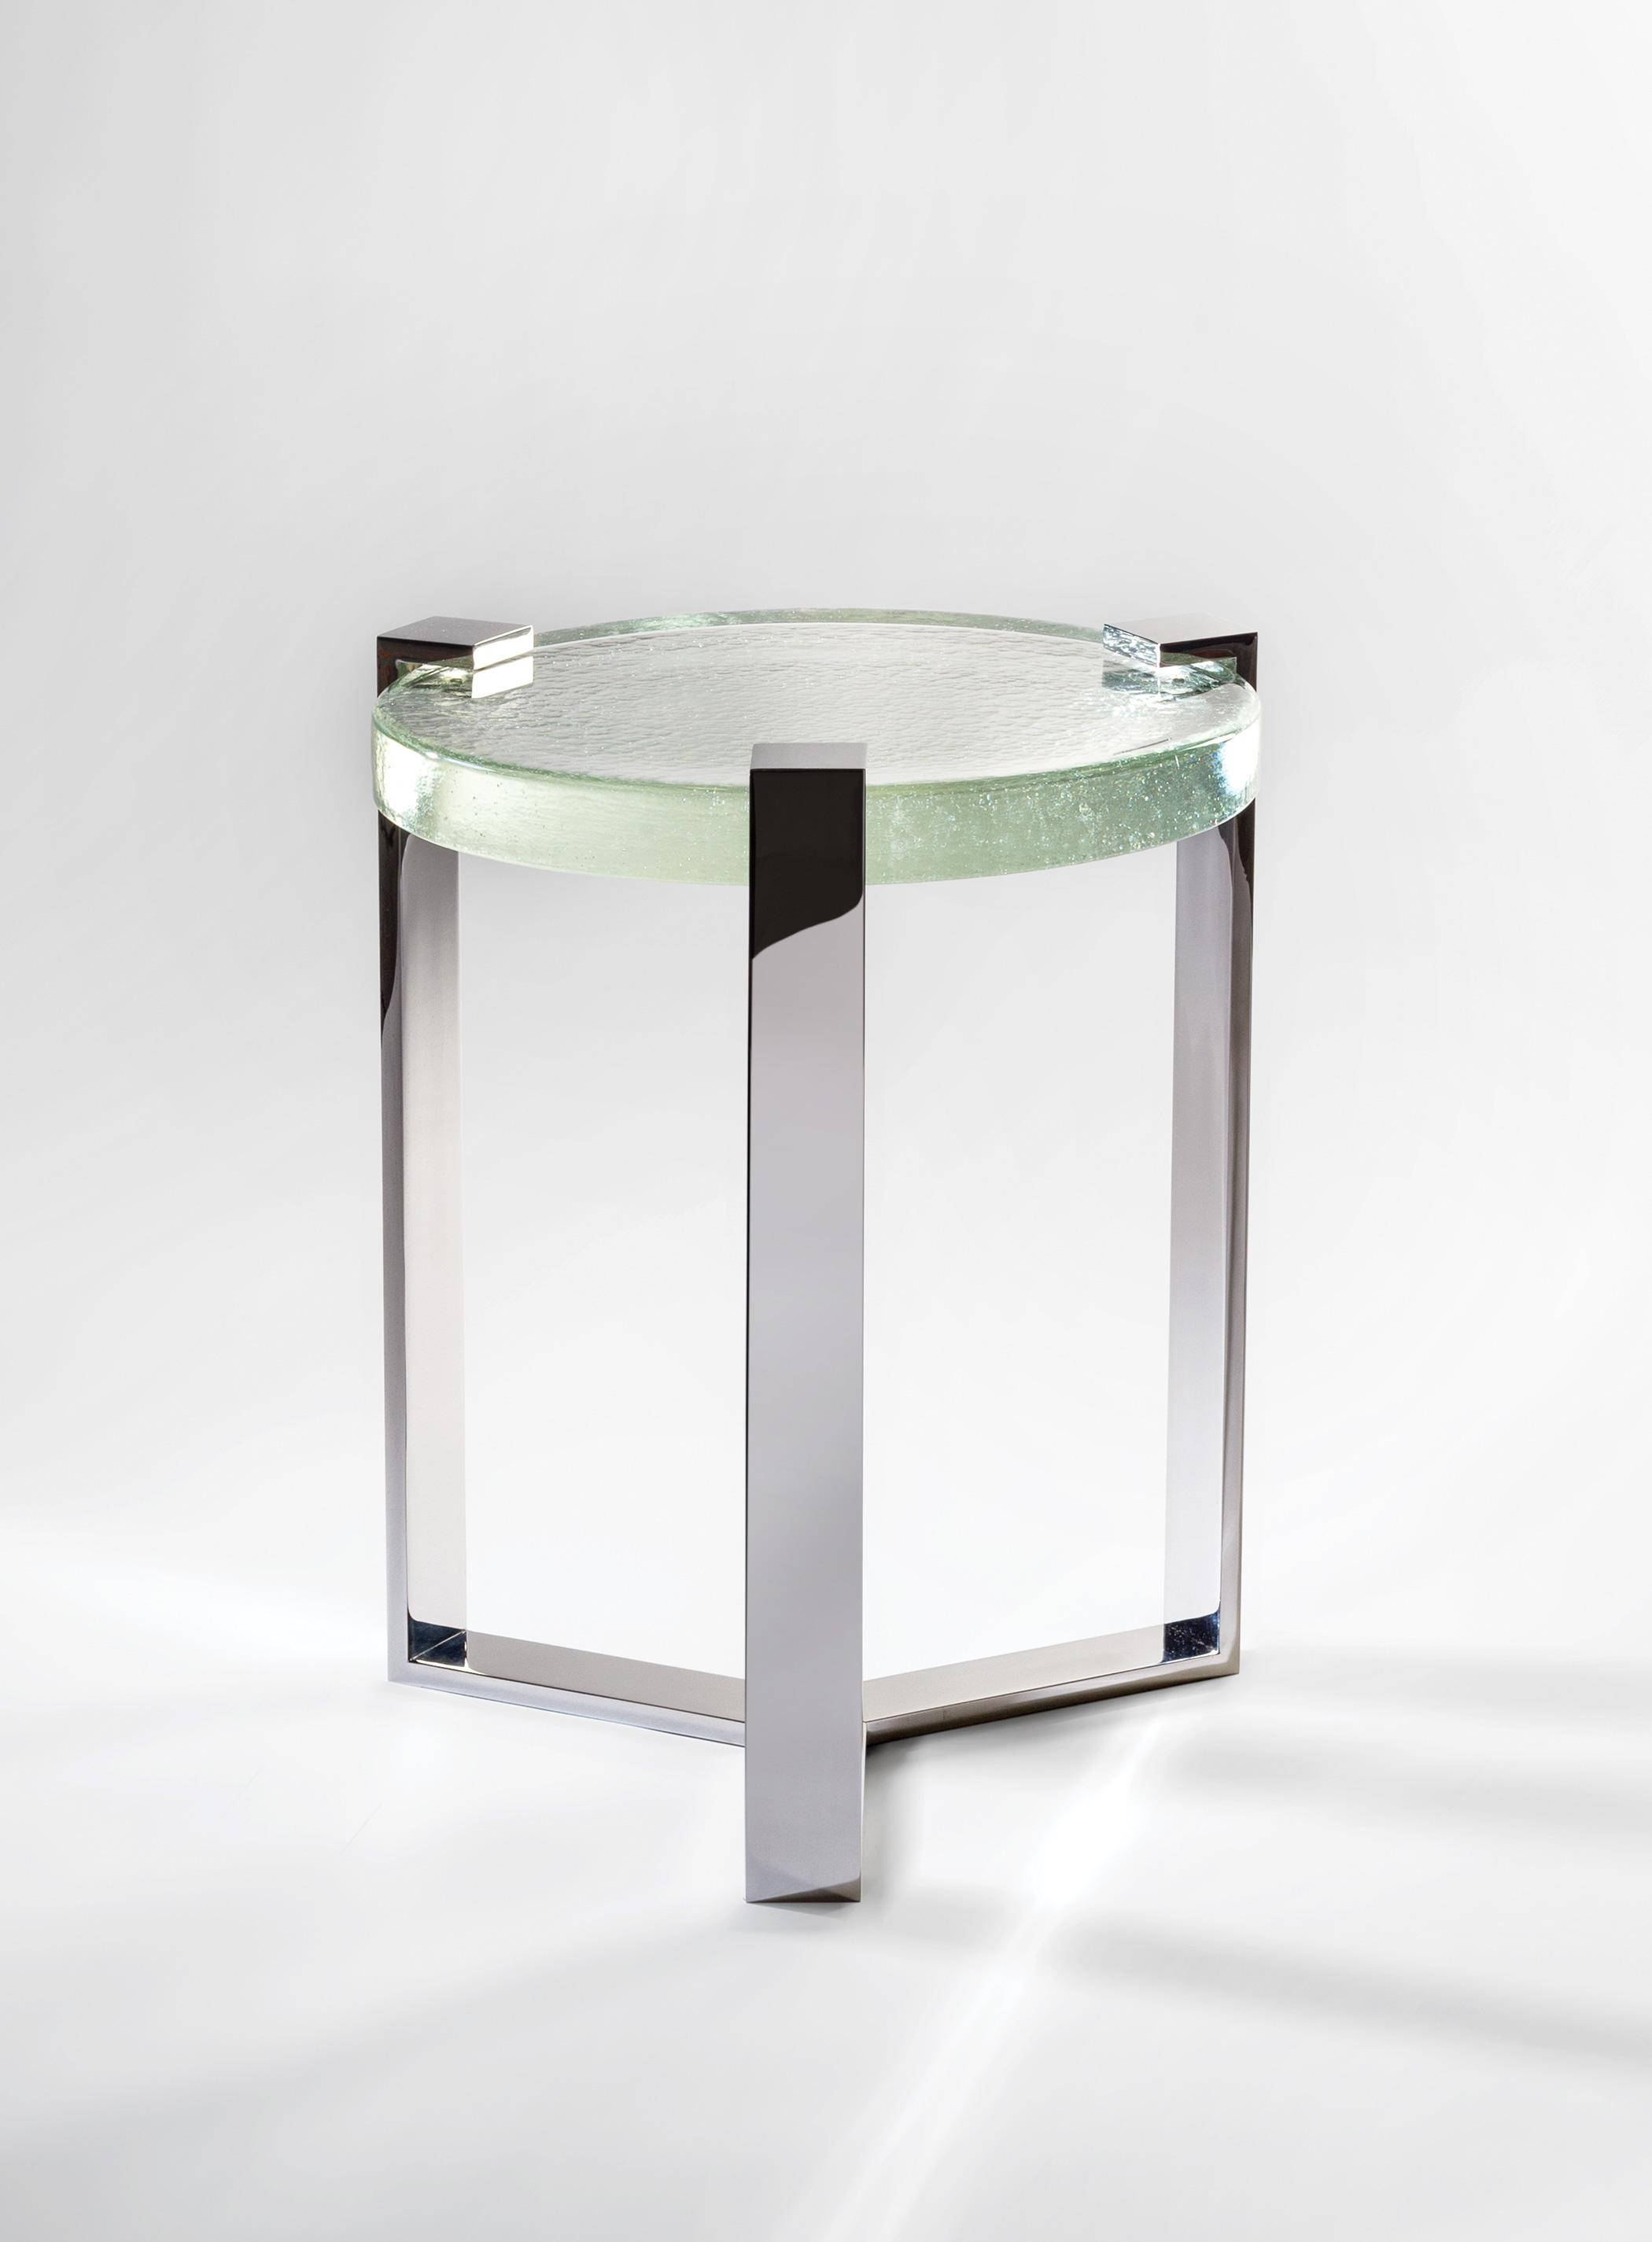 Magni_JewelSideTable_1